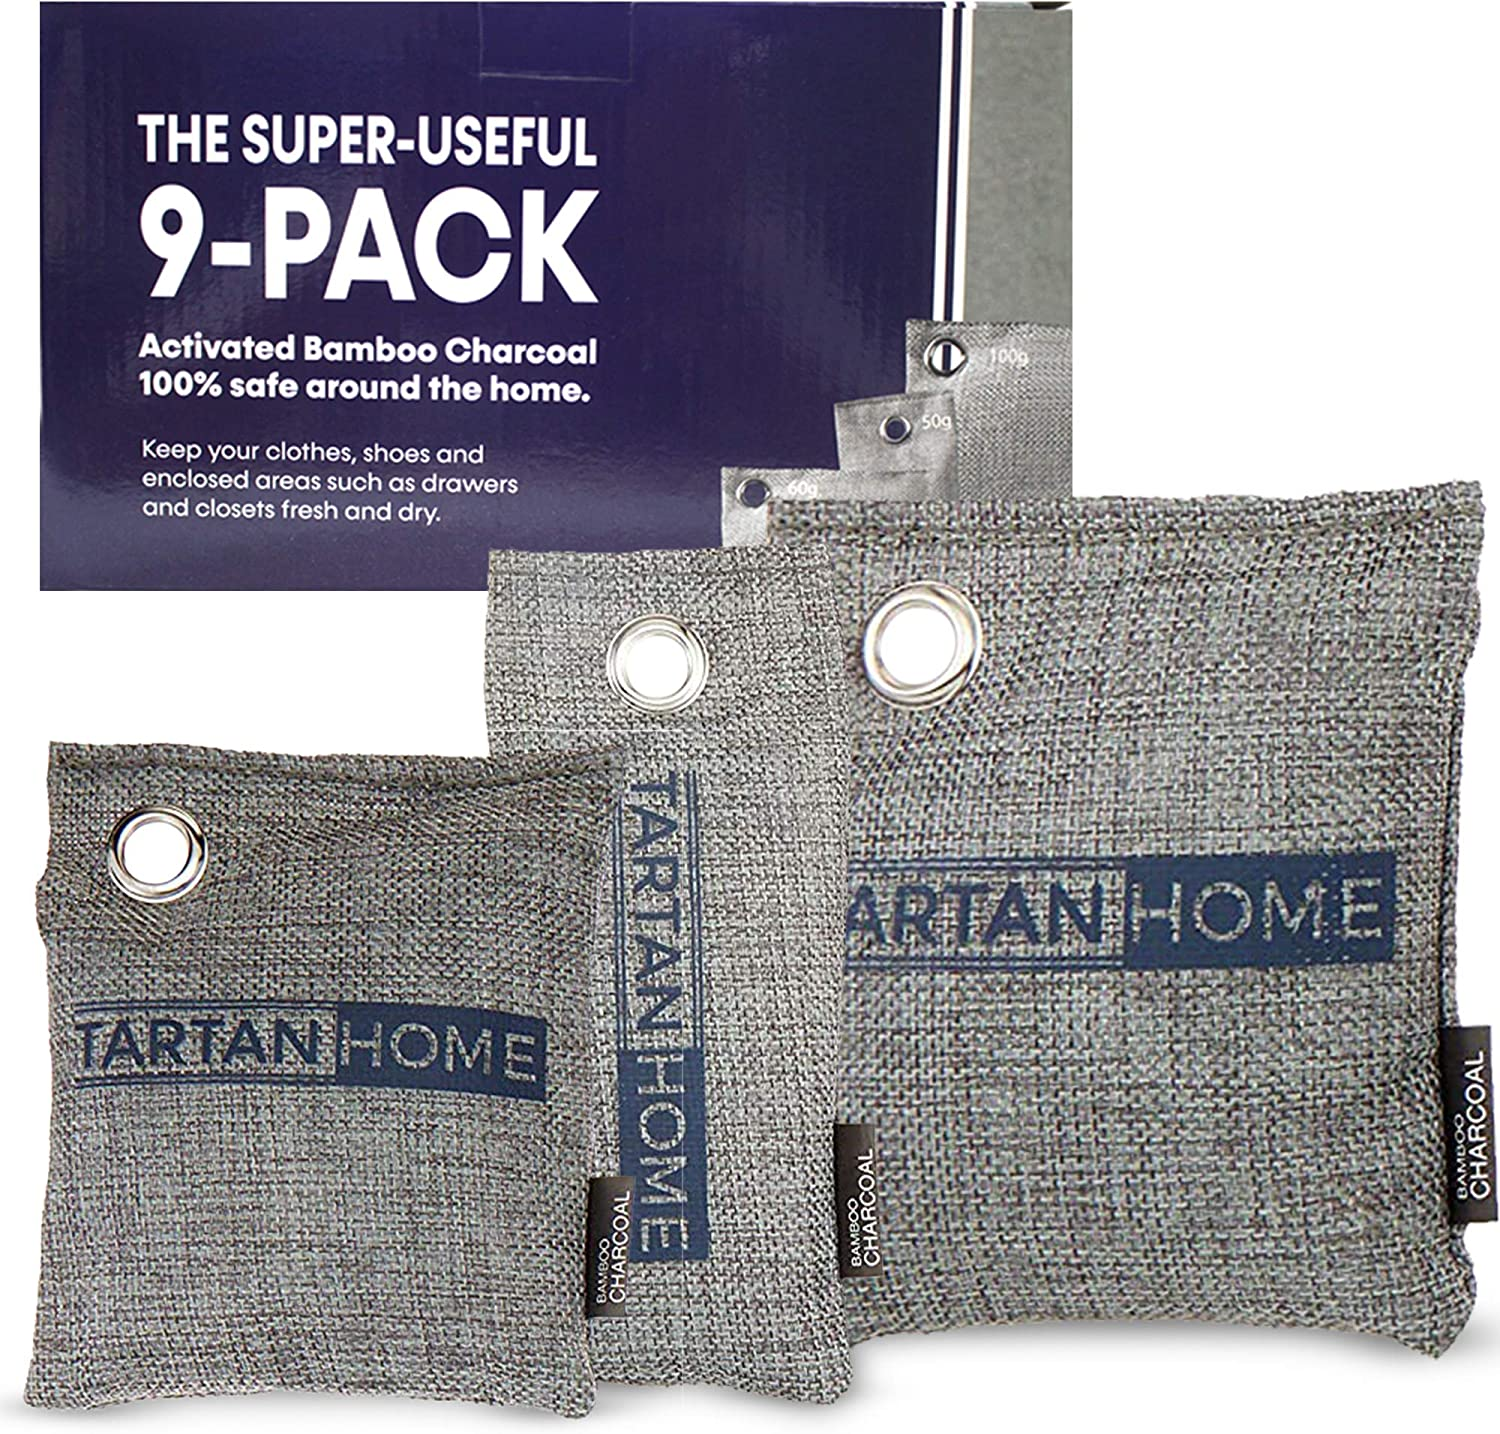 Charcoal Air Purifier Bags 9-Pack - 3 Sizes of Activated Charcoal Bags Natural Air Purifier Room Deodorizer for Home - Odor Absorber to Put in Your Shoes, Gym Bag, Closet, House and Car by Tartan Home